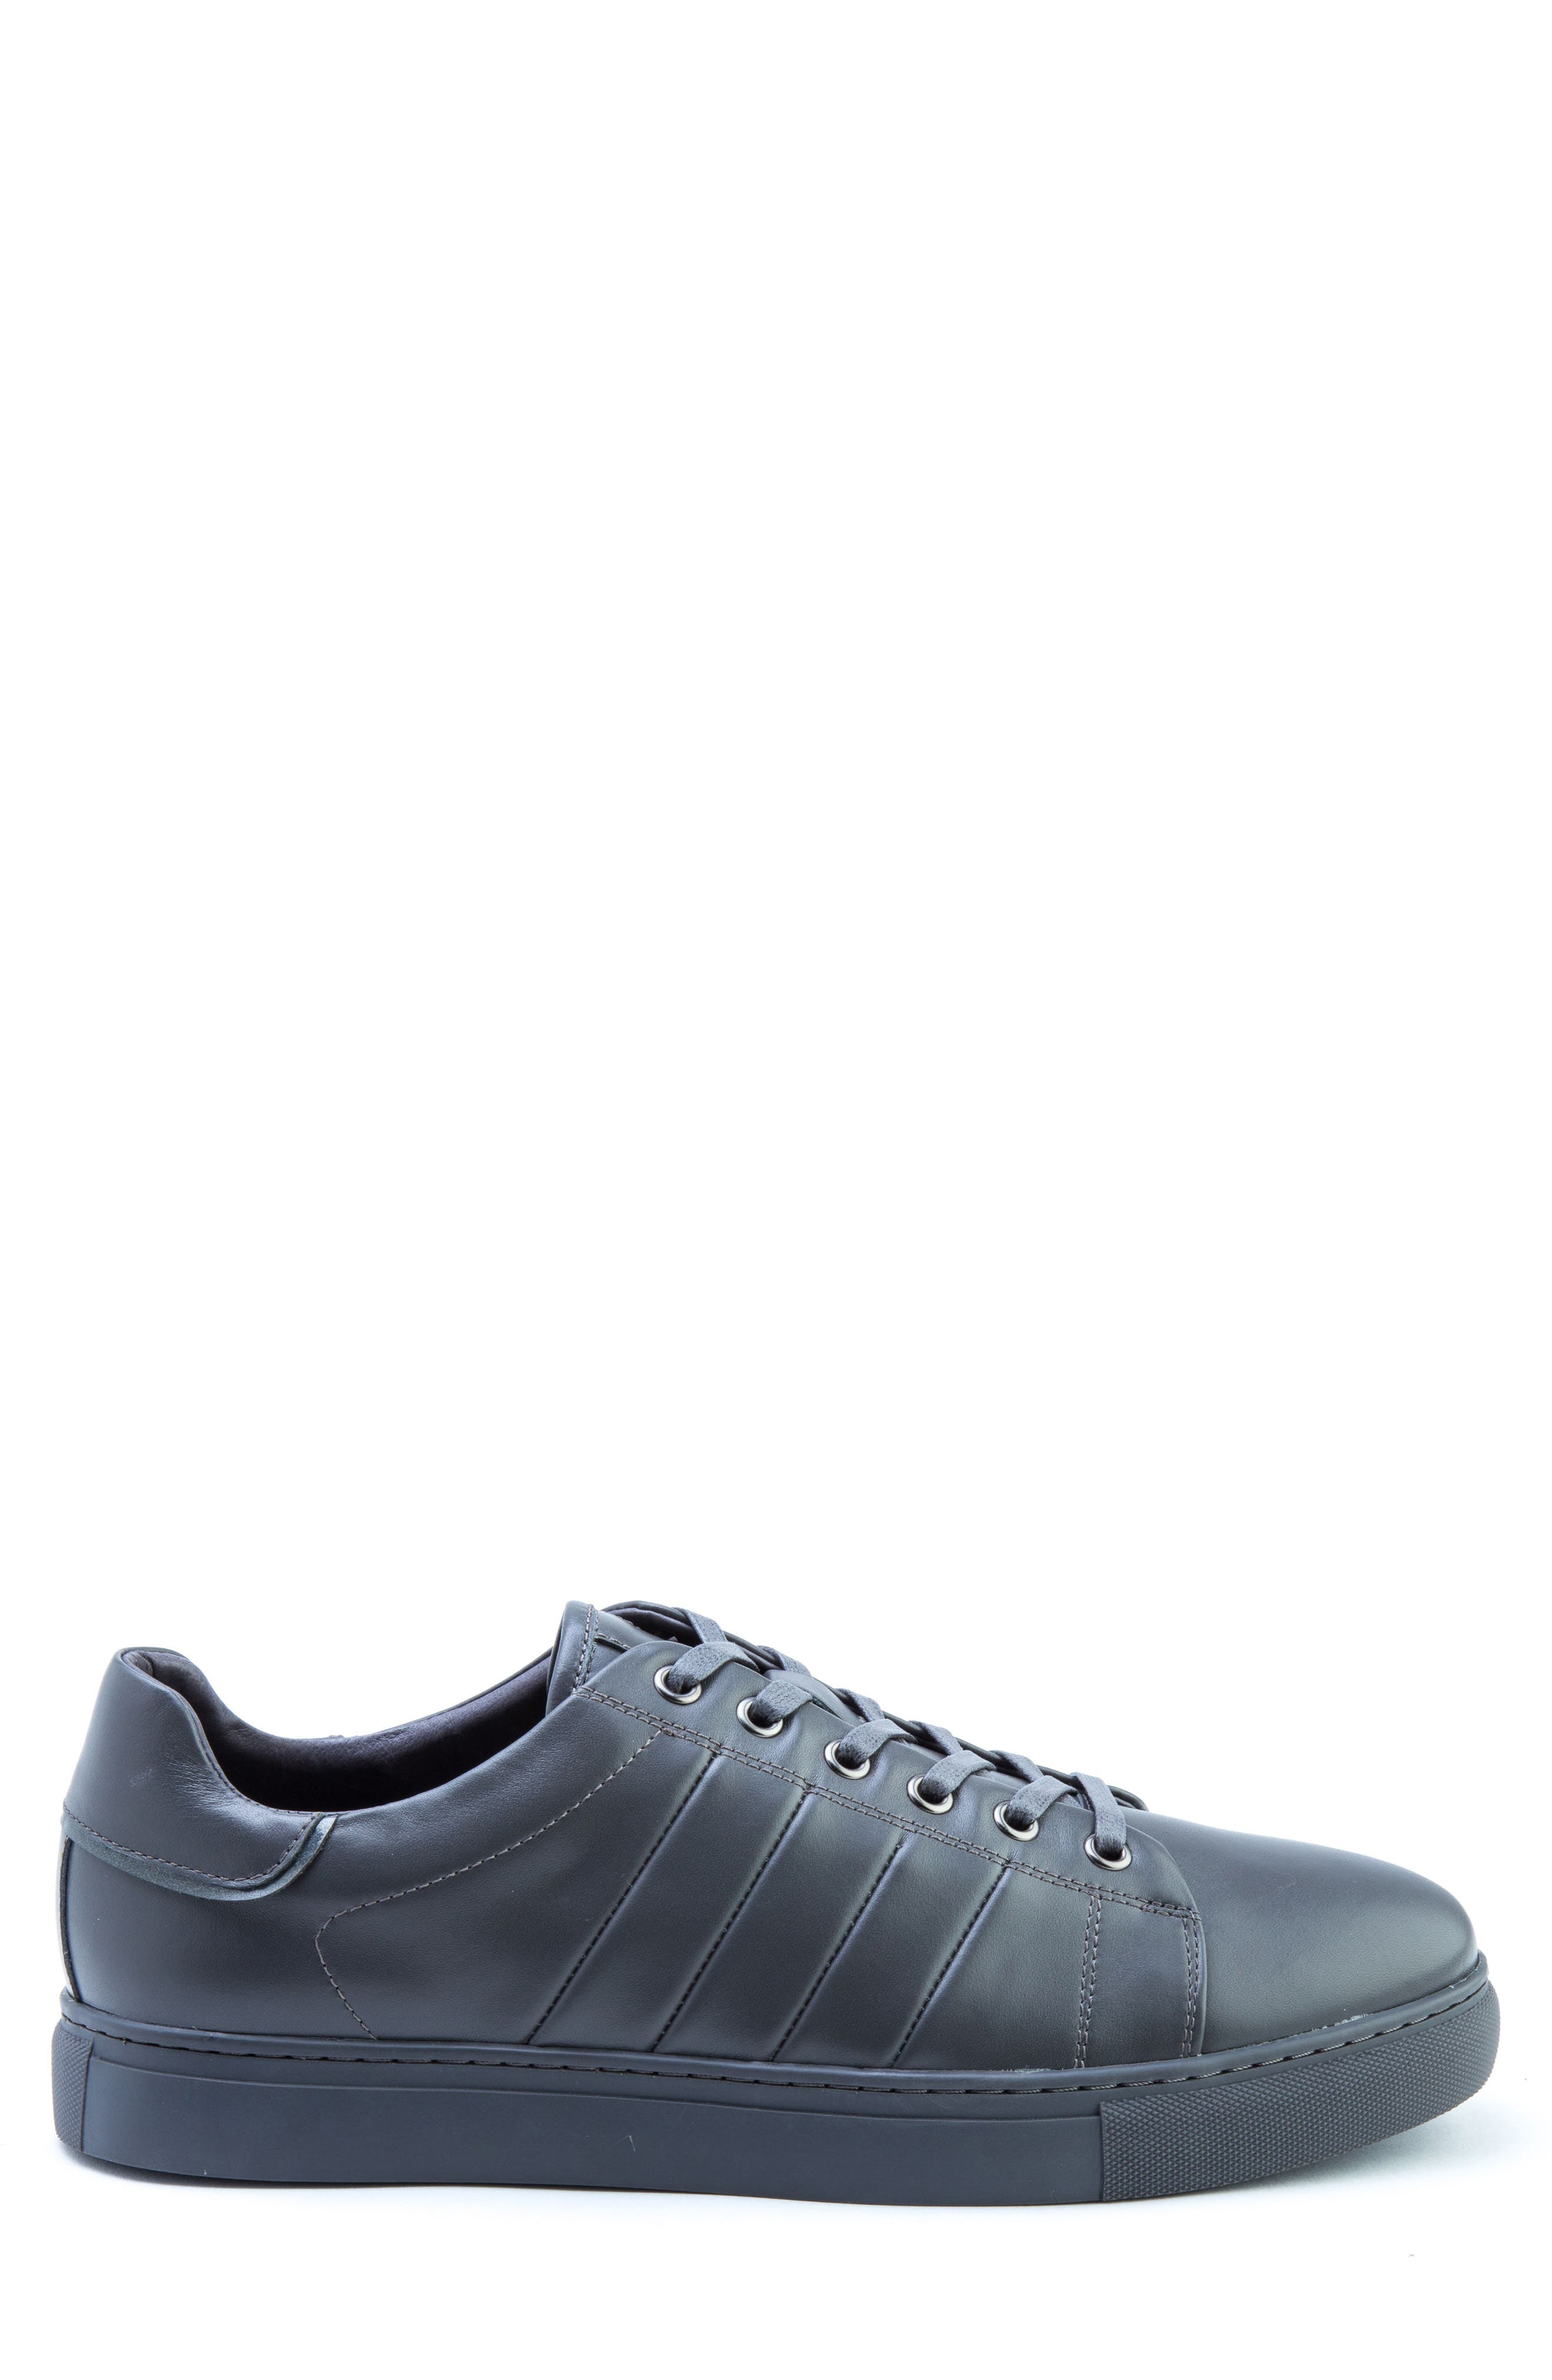 Mitchell Sneaker,                             Alternate thumbnail 3, color,                             GREY LEATHER